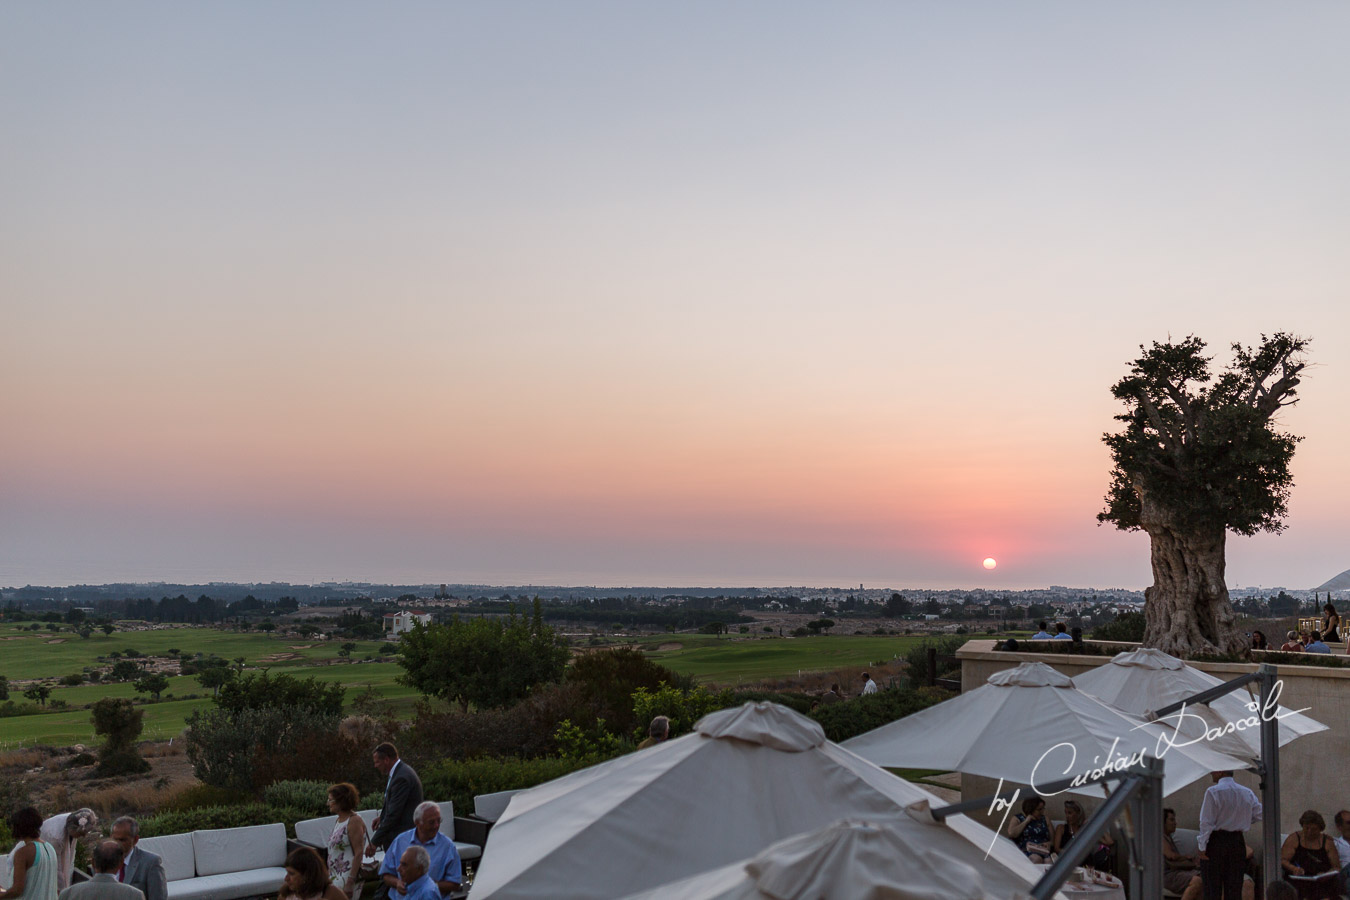 Gorgeous sunset captured form the Hills of the Elea Estate Golf by Cristian Dascalu wedding photographer.